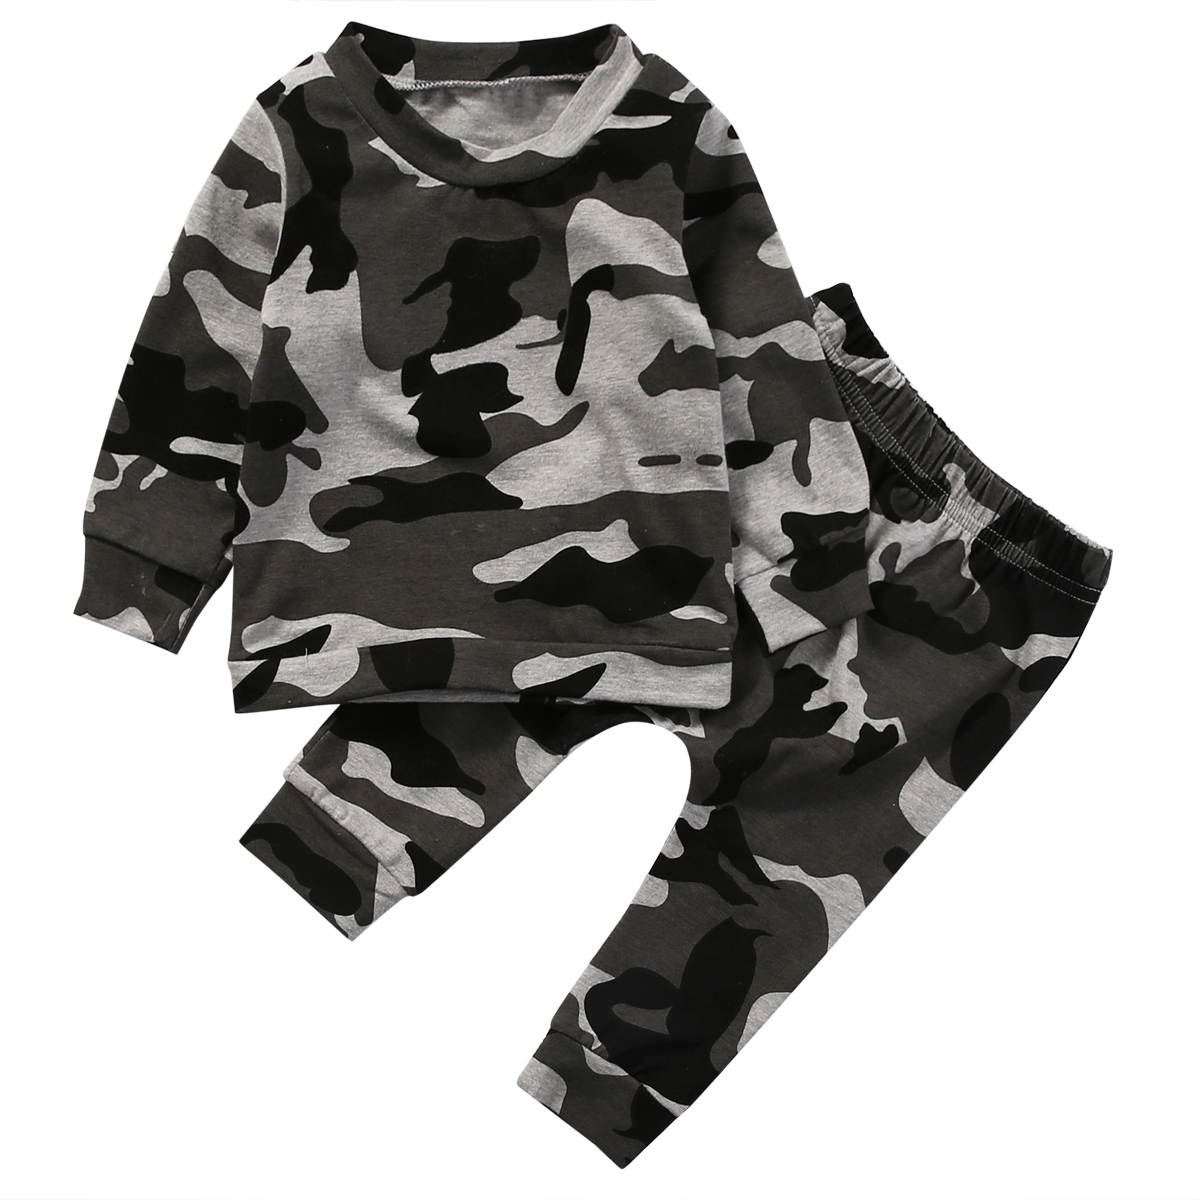 Spring Fashion camouflage kids boys clothes set autumn toddler clothing 2pcs black t shirt+pants boy sports suit leisure clothes